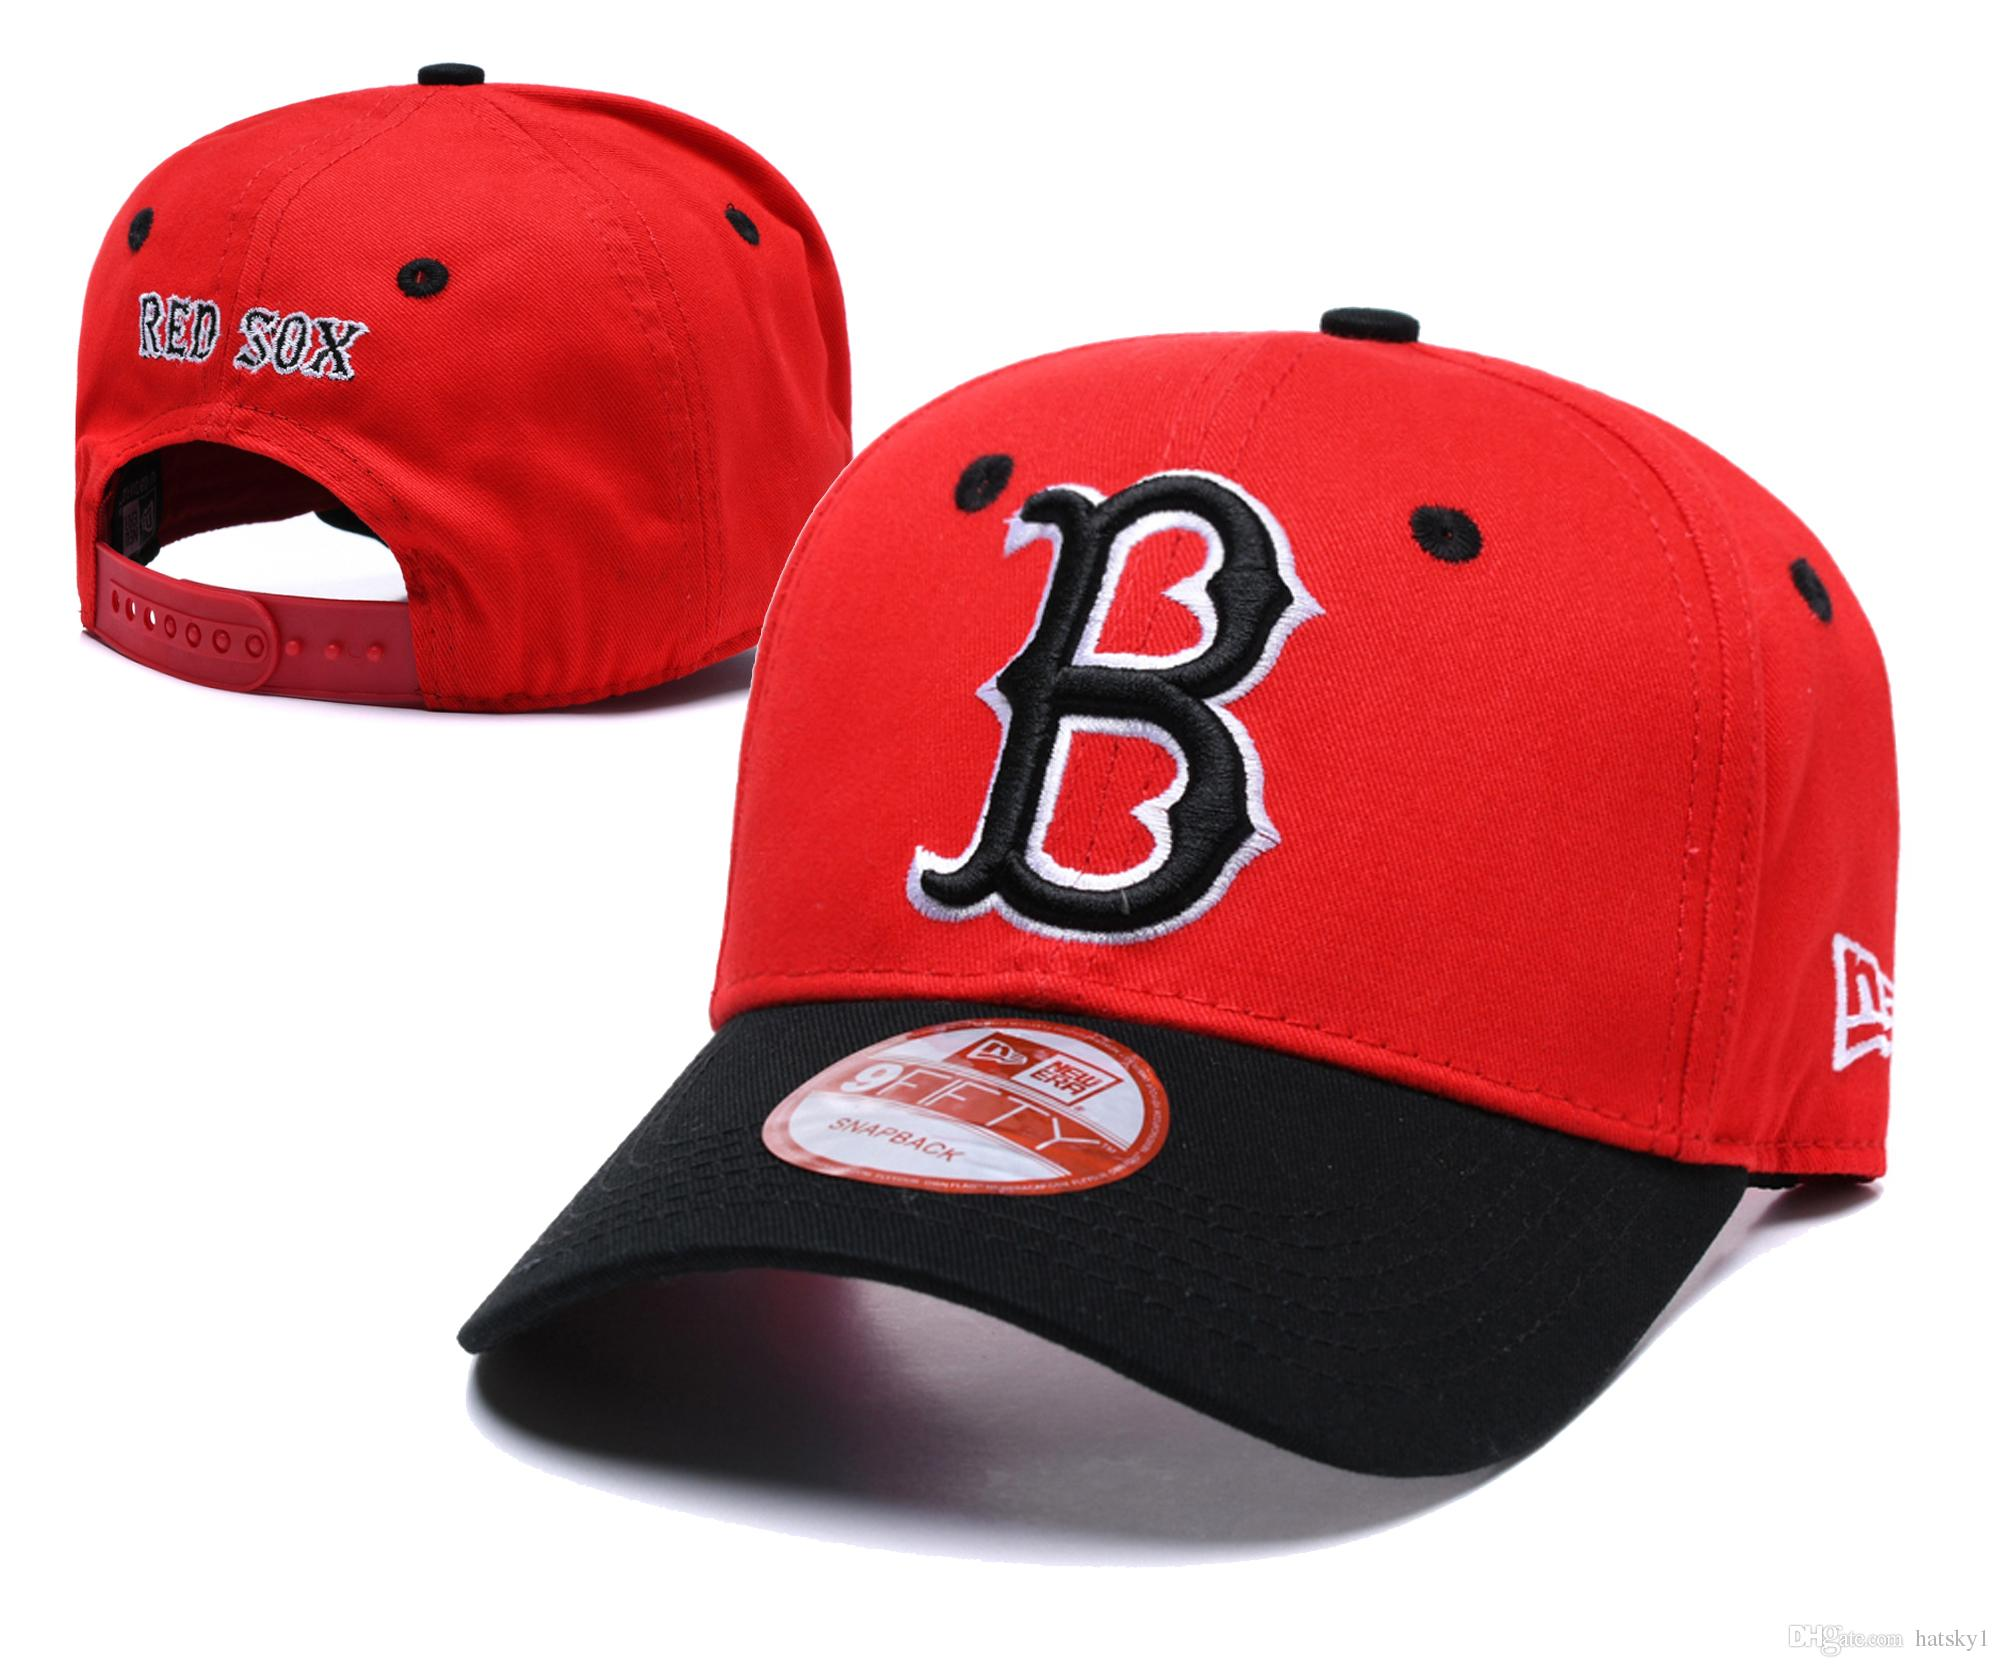 9ec807121870d Hot Sale Designing Red Sox Hats Men Women Baseball Caps Snapback Solid  Colors Cotton Bone European American Styles Fashion Hat The Game Hats Baby  Caps From ...